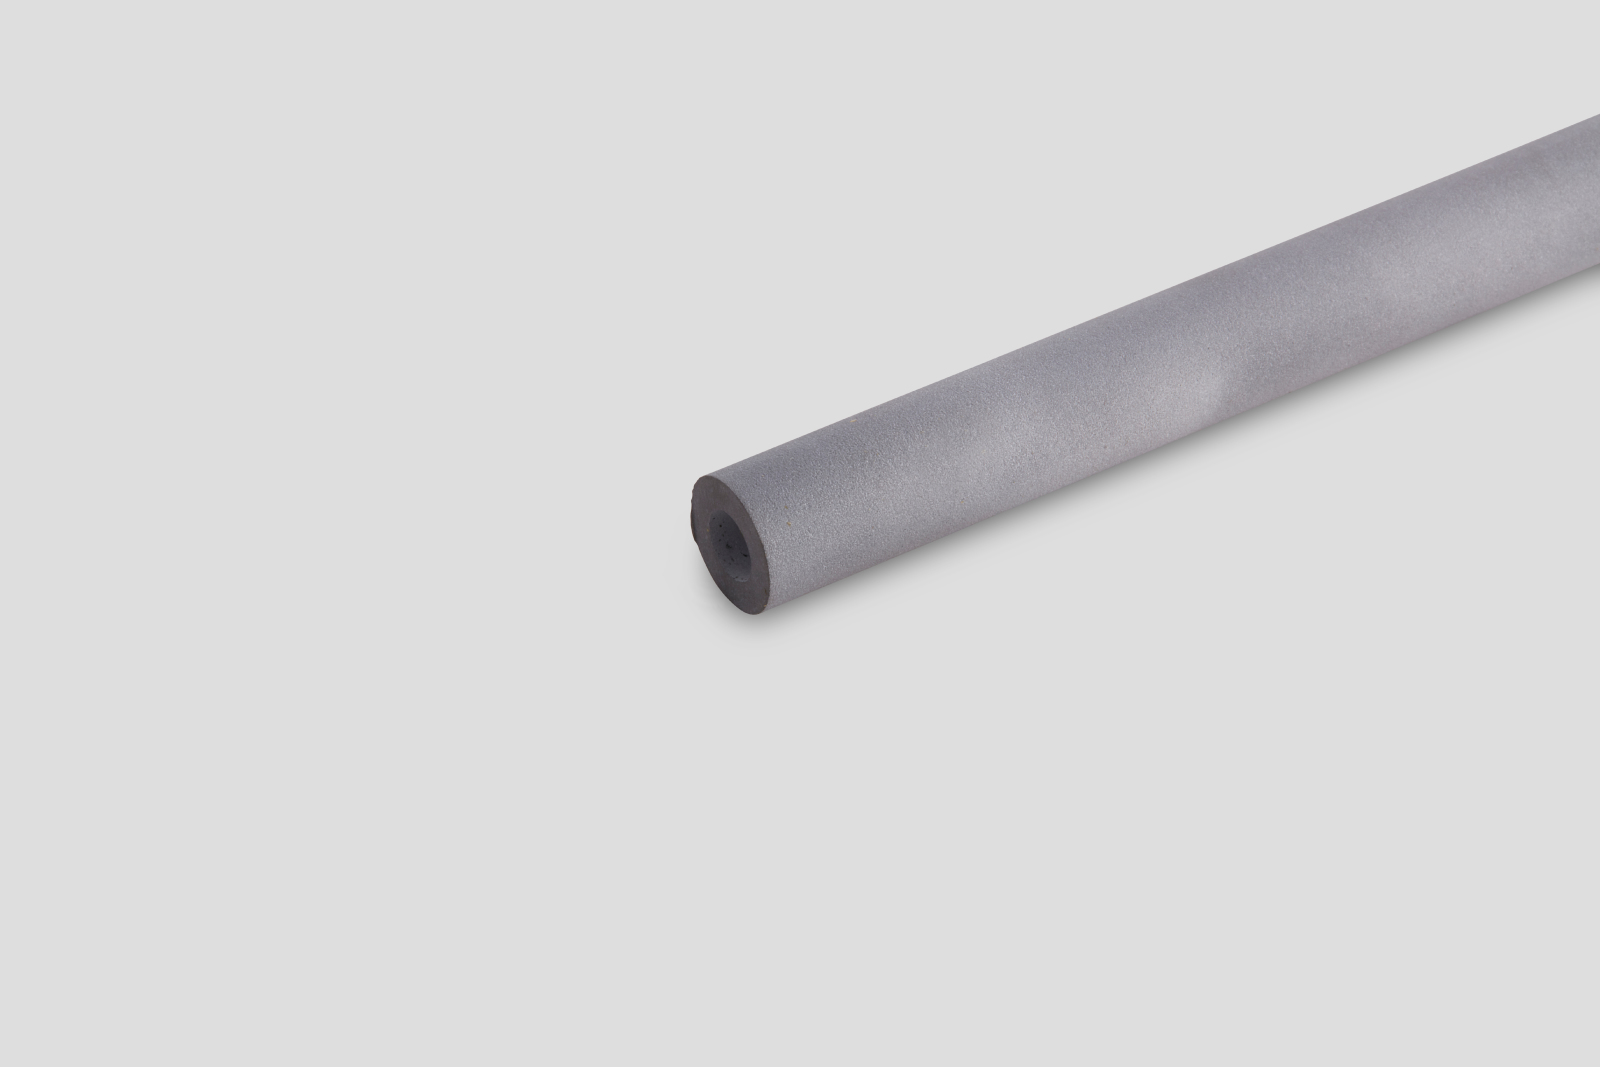 silicon nitride reaction bonded tube